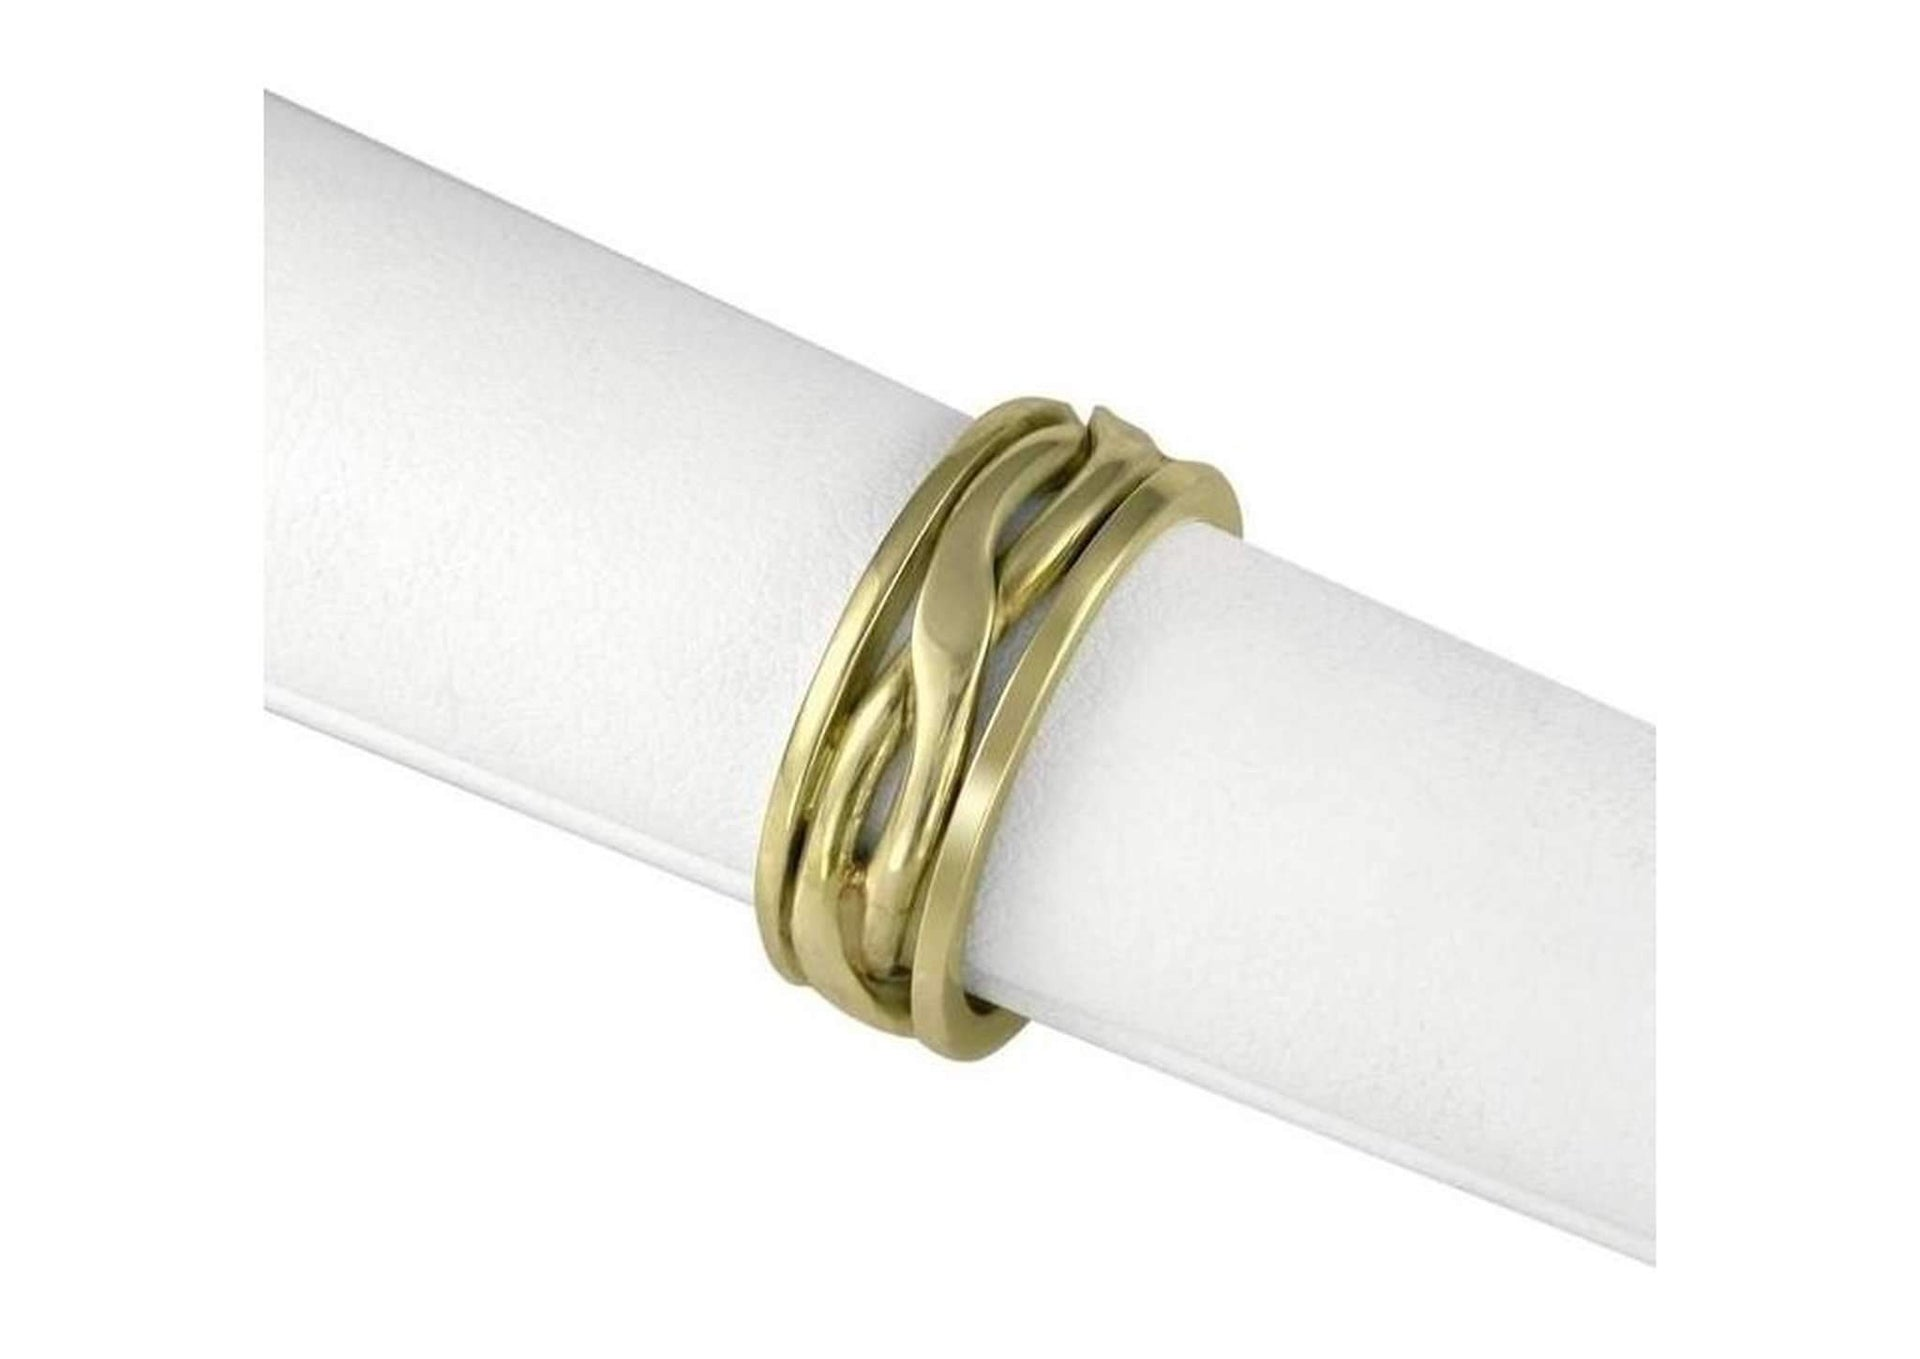 18ct Gold Crossover band   - Jens Hansen